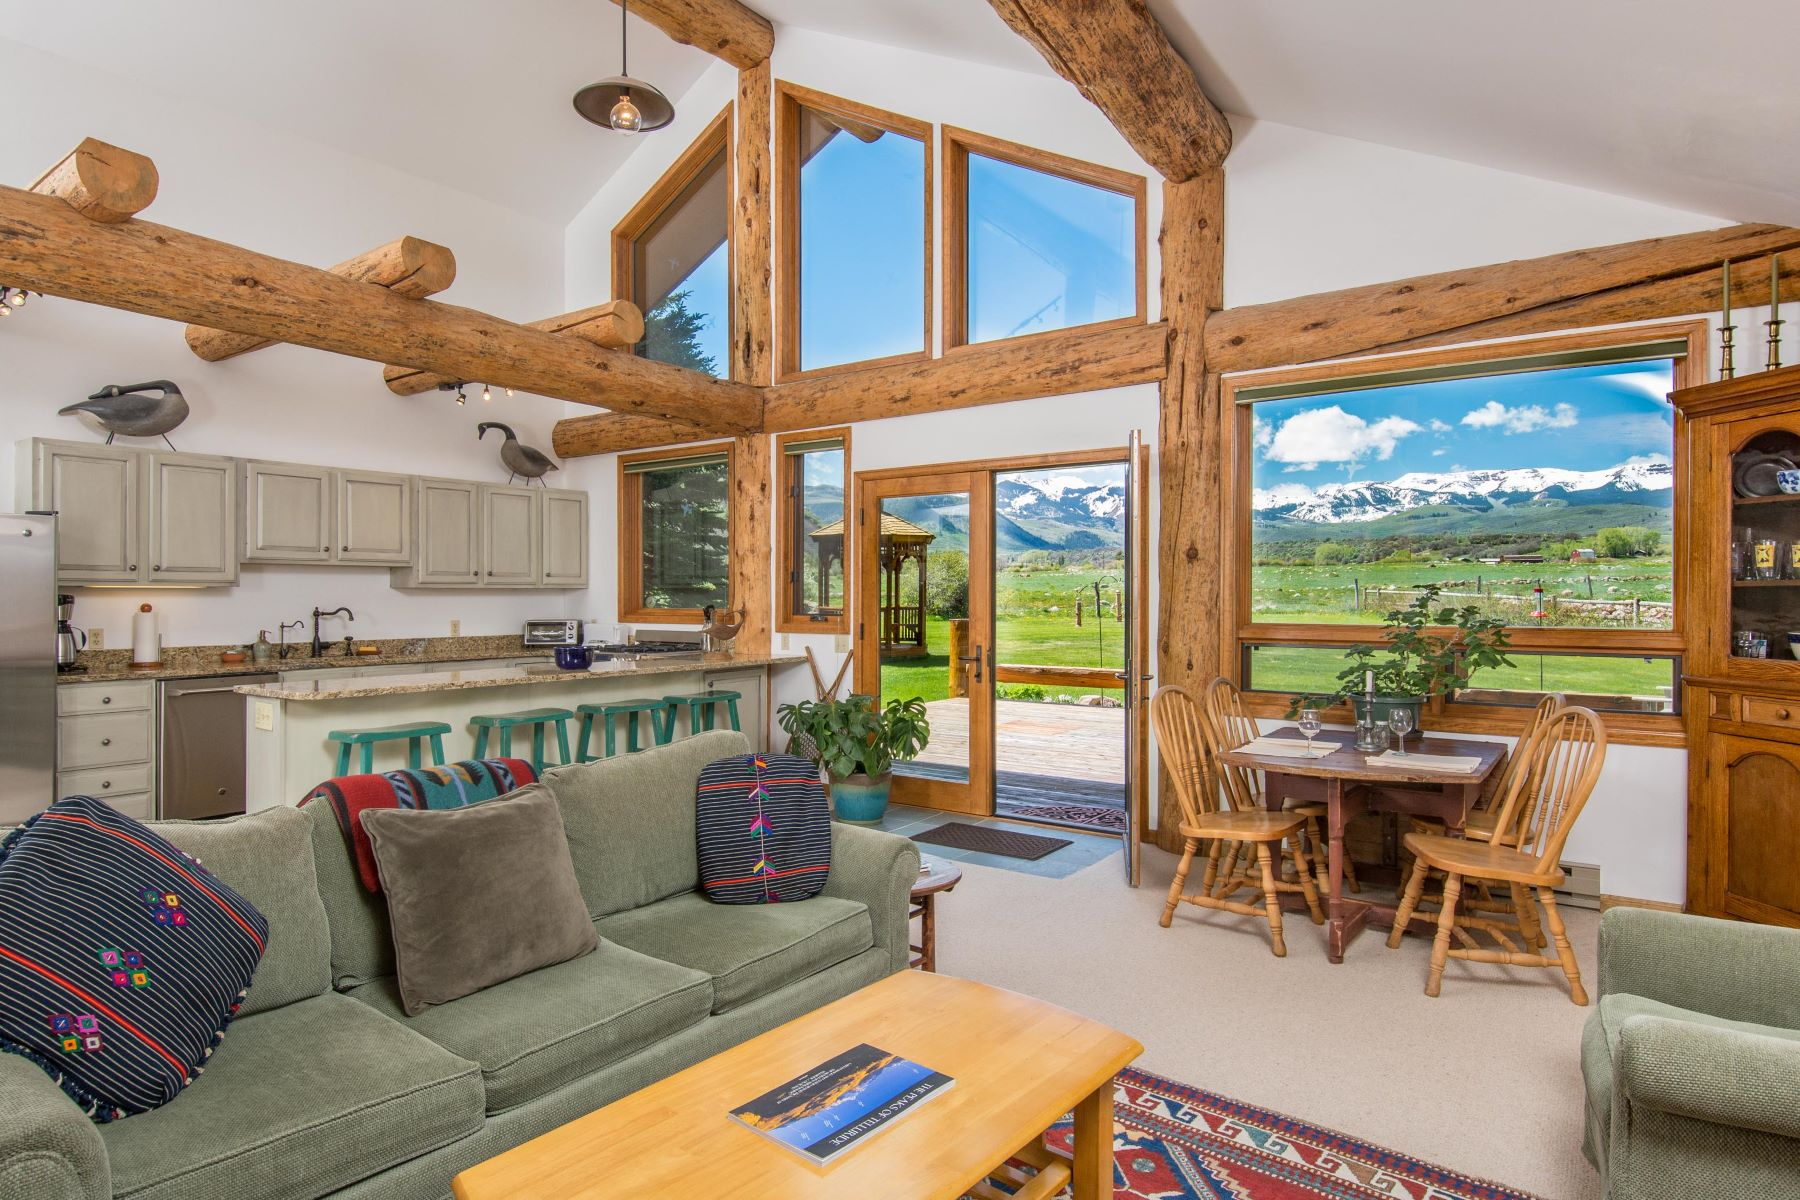 Single Family Home for Sale at Little Elk Creek 144 Haystack Lane Snowmass, Colorado, 81654 United States